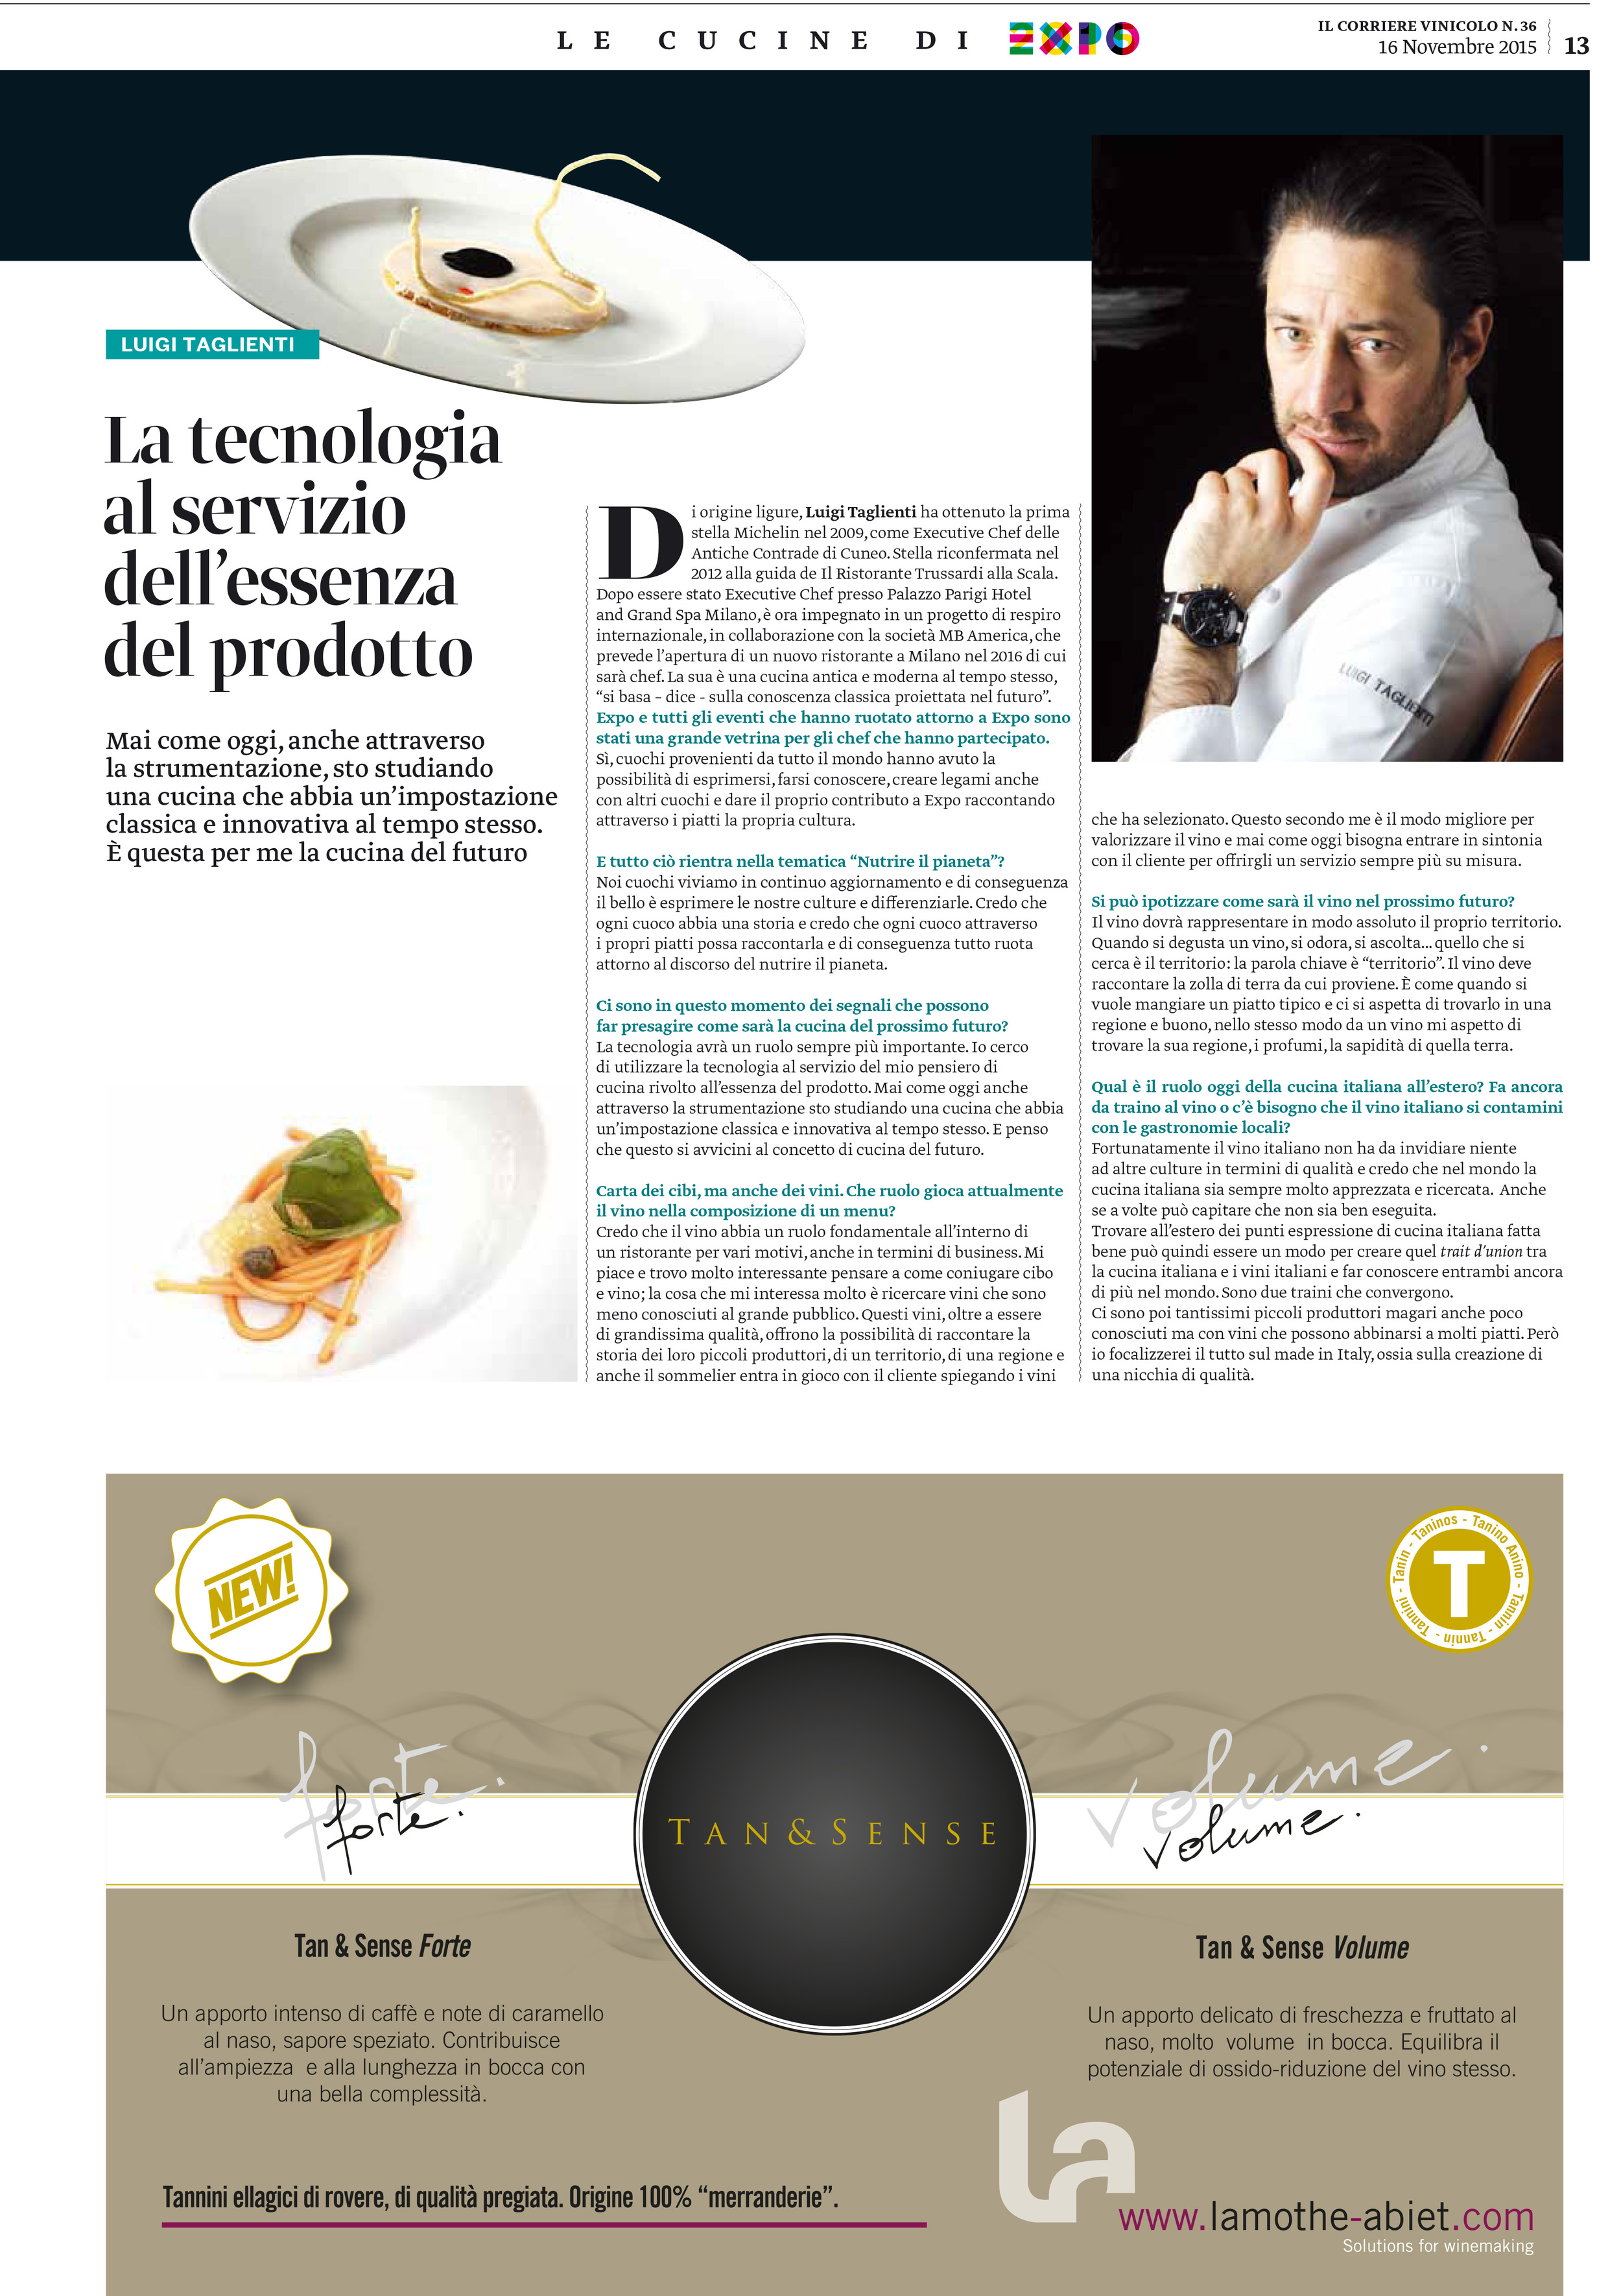 """<p><strong>IL CORRIERE VINICOLO</strong><a href=""""/s/IL_CORRIERE_VINICOLO_161115.pdf"""" target=""""_blank"""">Download Article→</a></p>"""